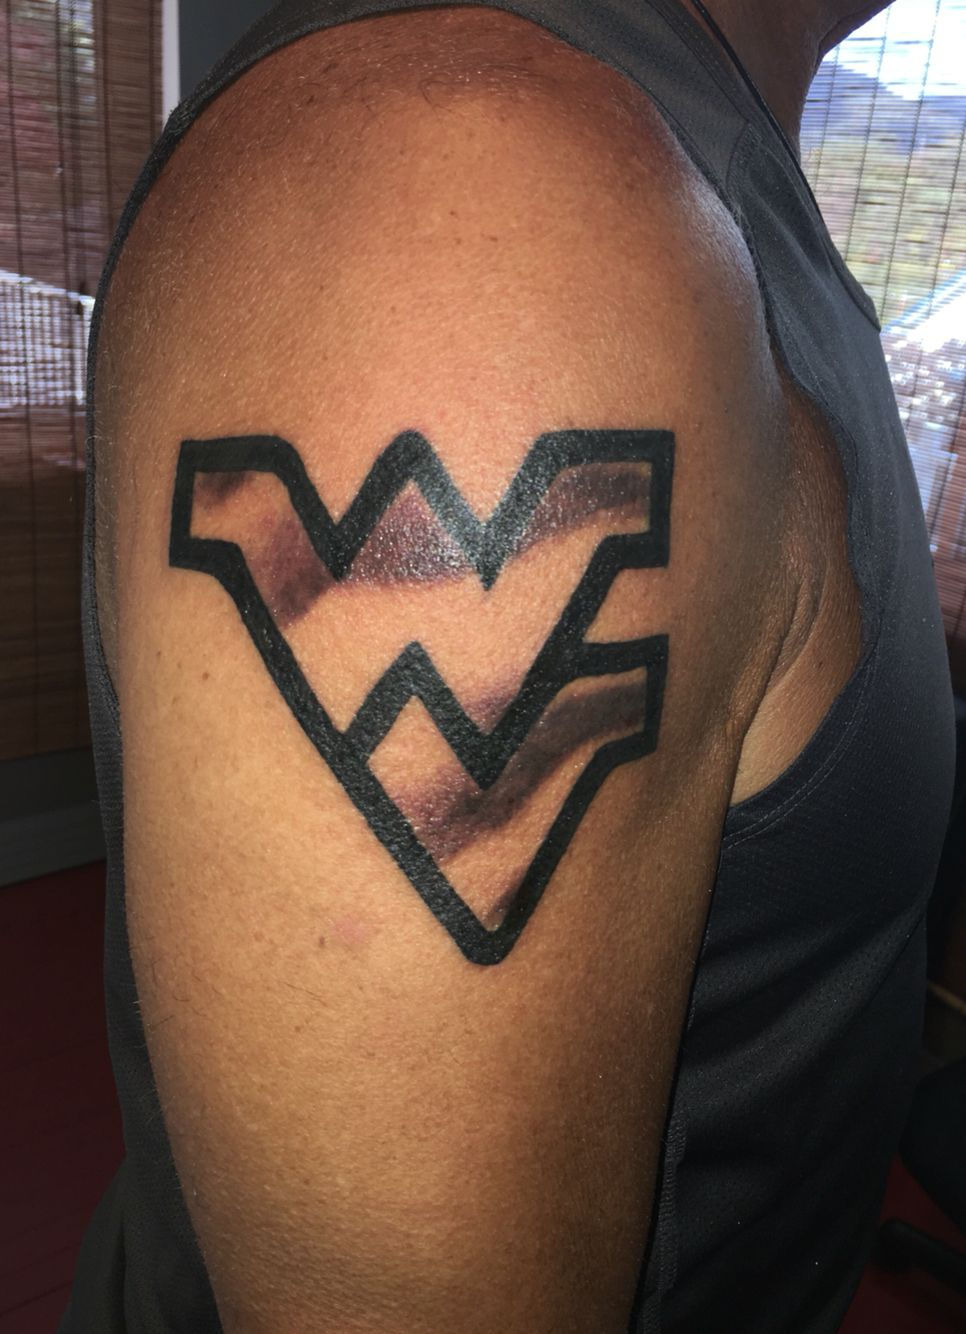 west virginia tattoo flying wv tattoo tattoos pinterest west virginia tattoo and tattoo. Black Bedroom Furniture Sets. Home Design Ideas